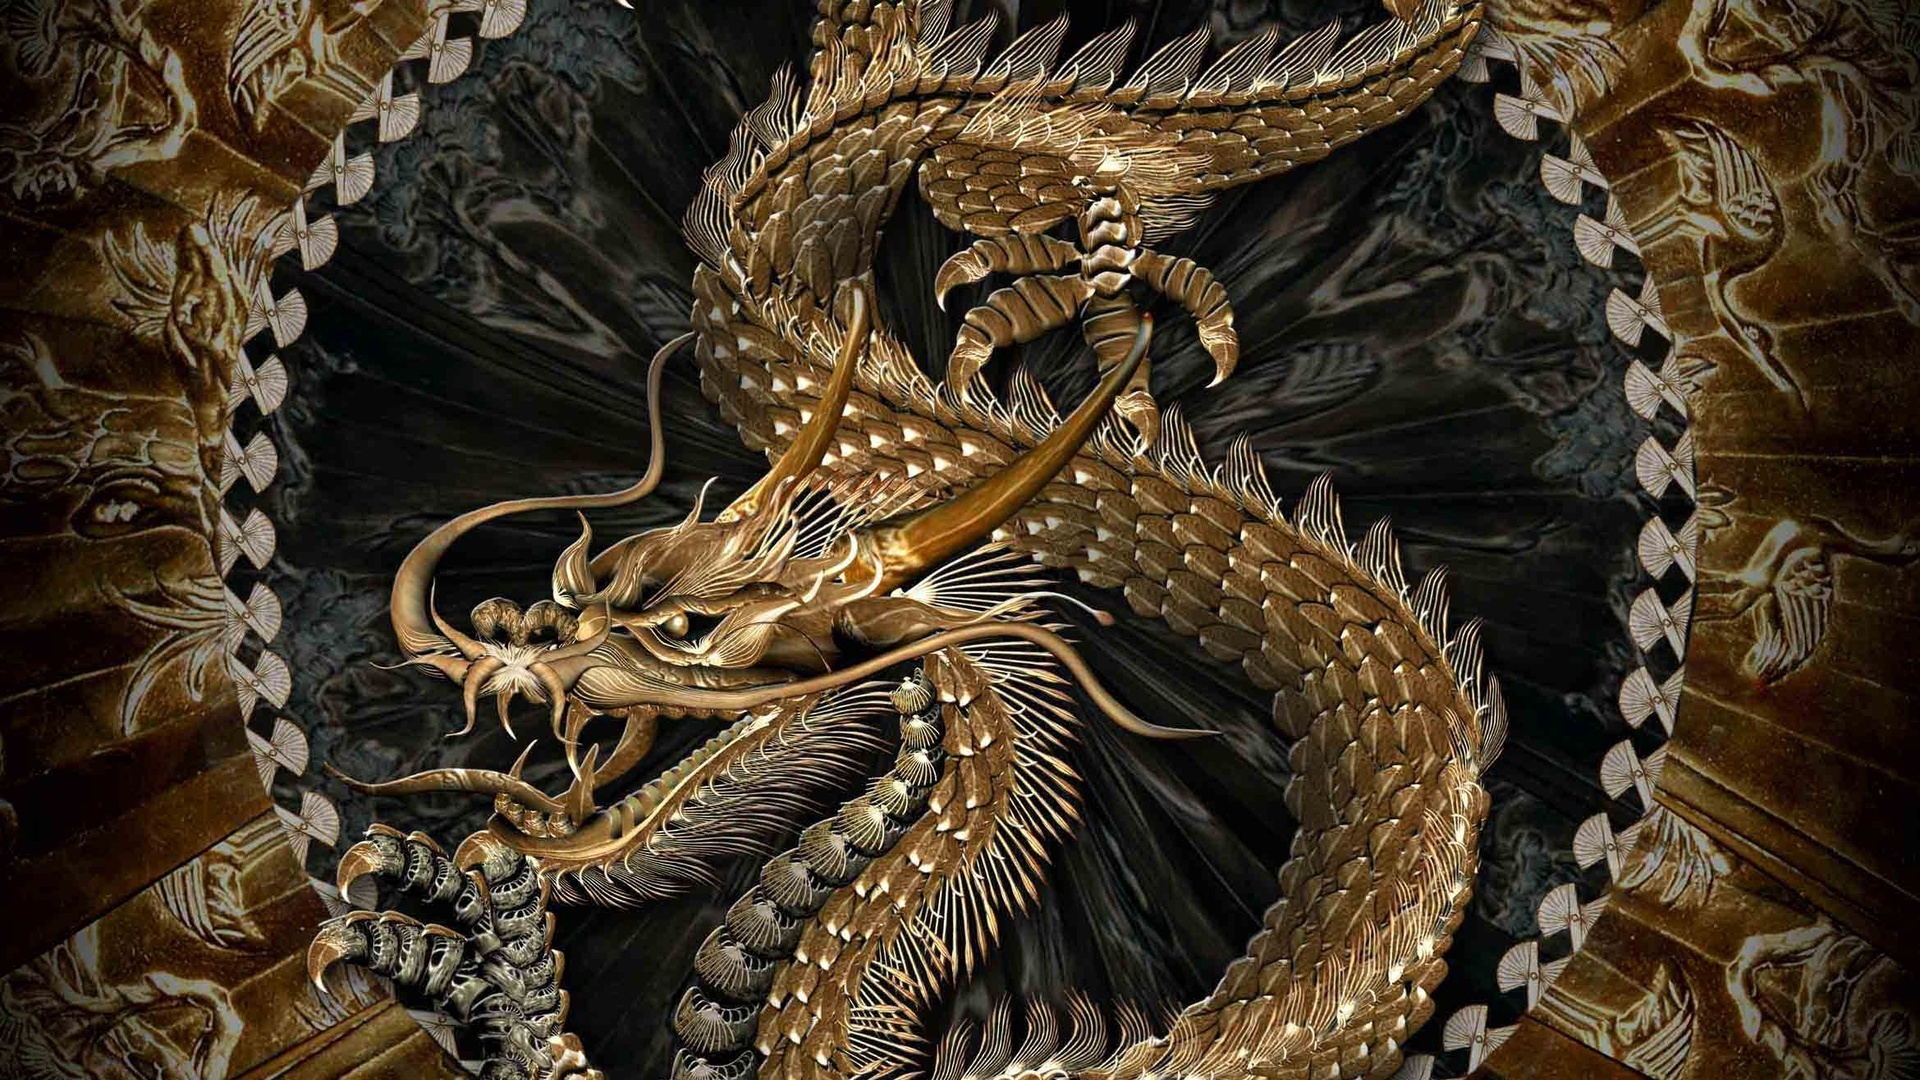 3D Chinese Dragon 1920 x 1080 Download Close 1920x1080